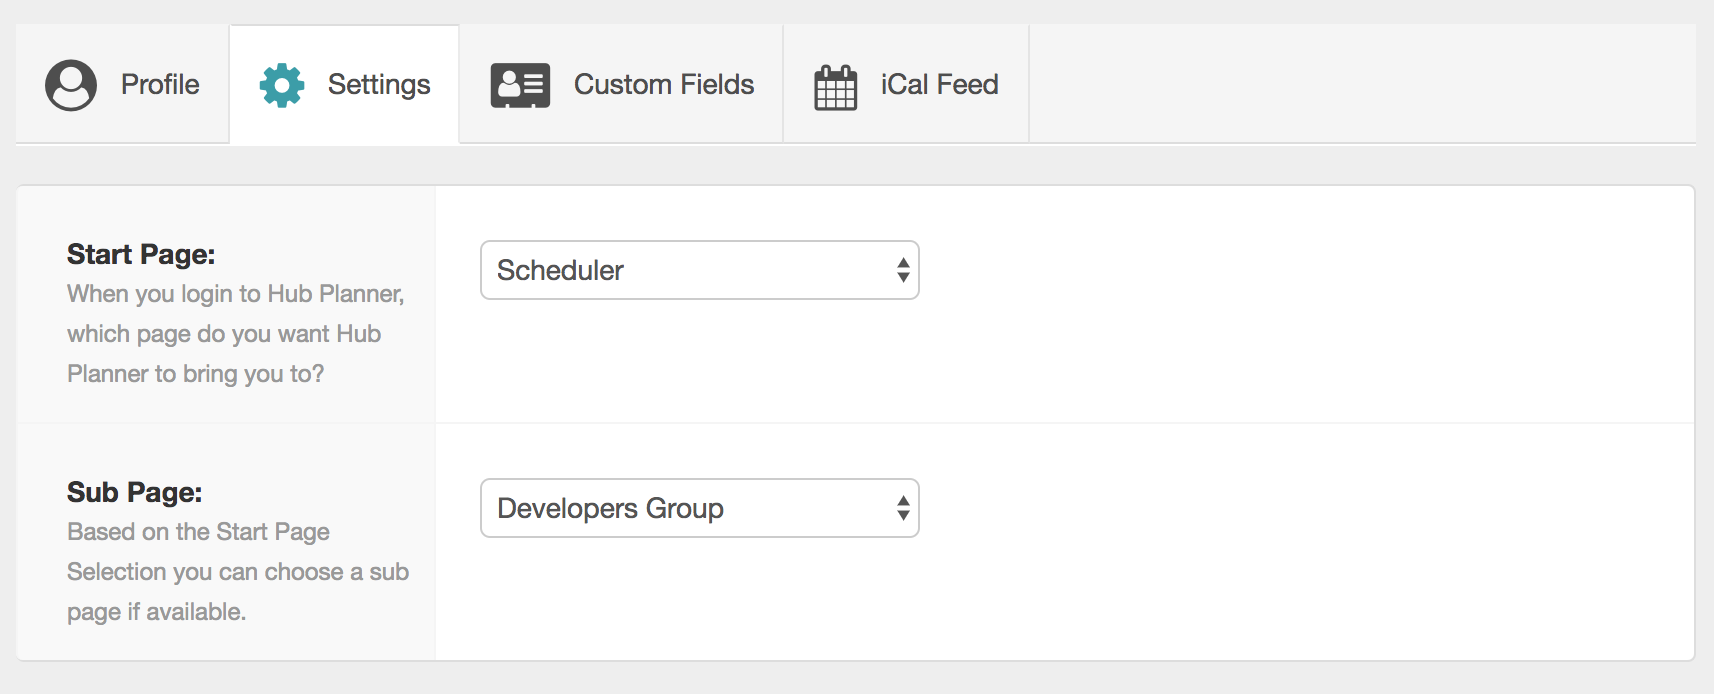 Hub_Planner_Start_Page_Selection